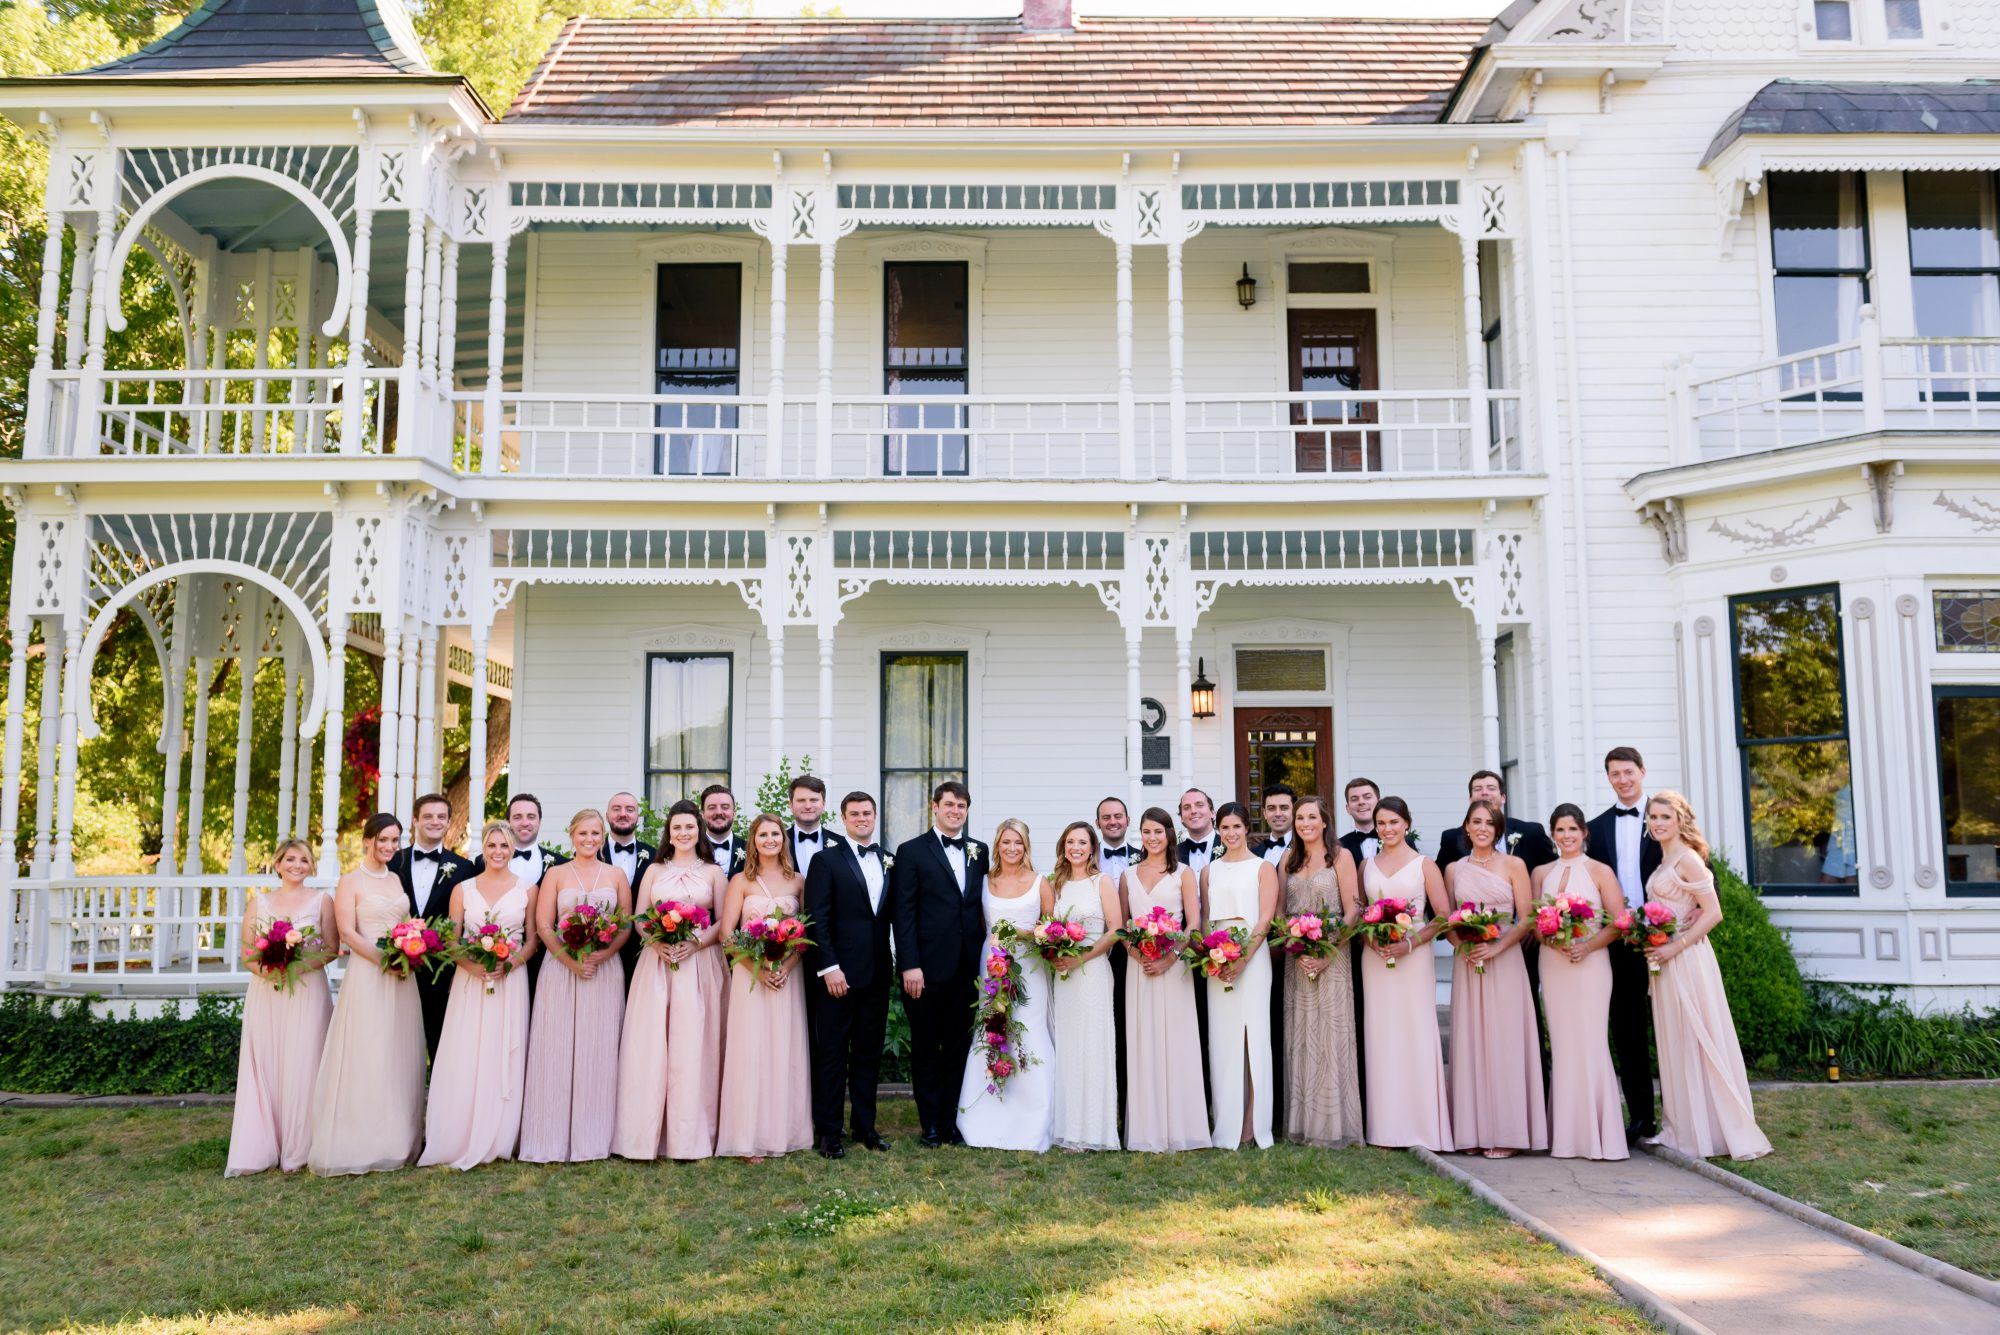 Texas-Sized Bridal Party